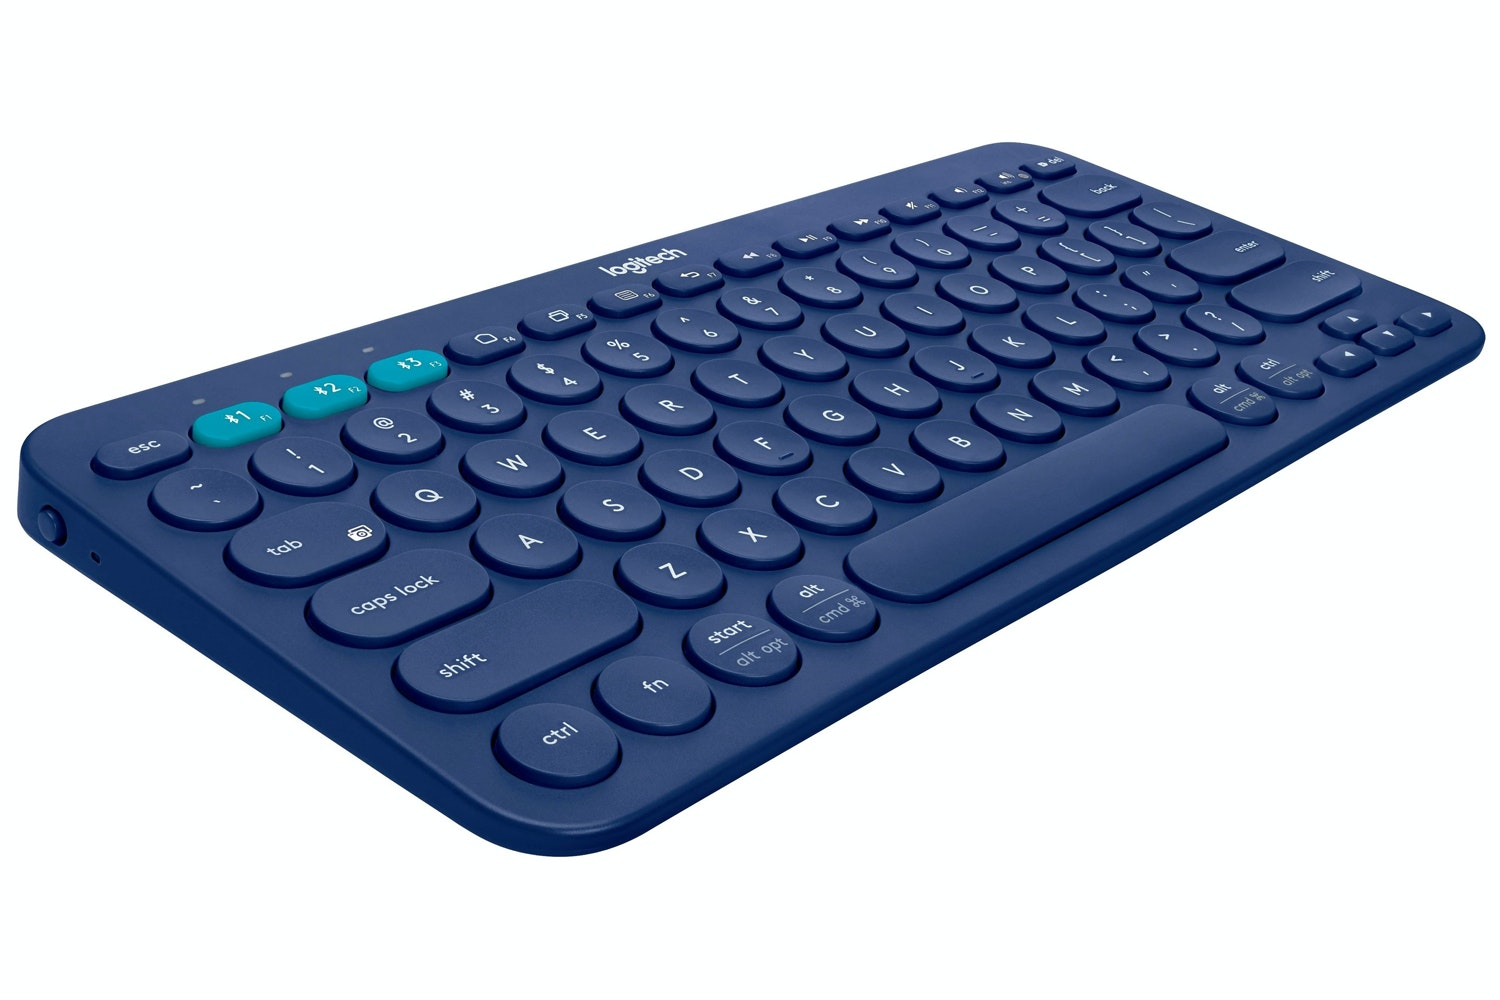 Logitech K380 Multi-Device Wireless Keyboard | Blue